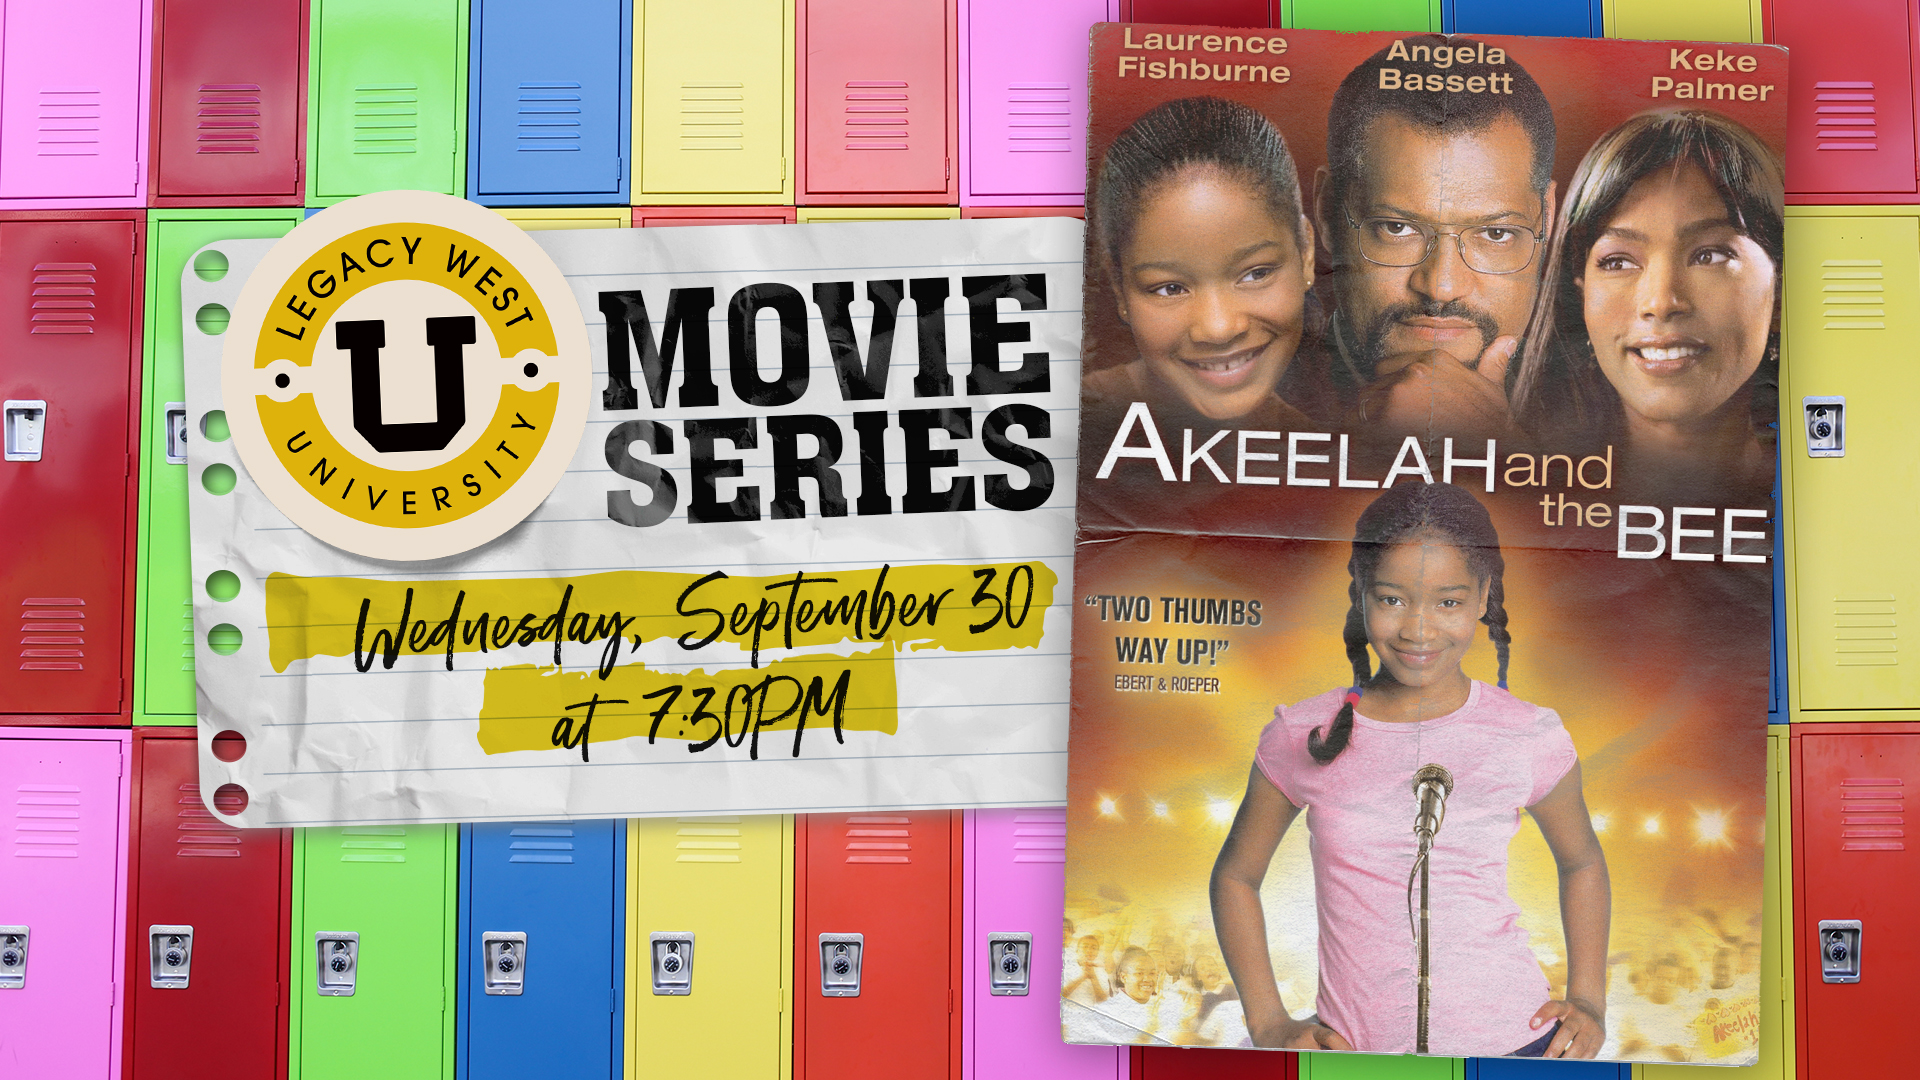 Legacy West University Movie Series: Akeelah and the Bee - hero